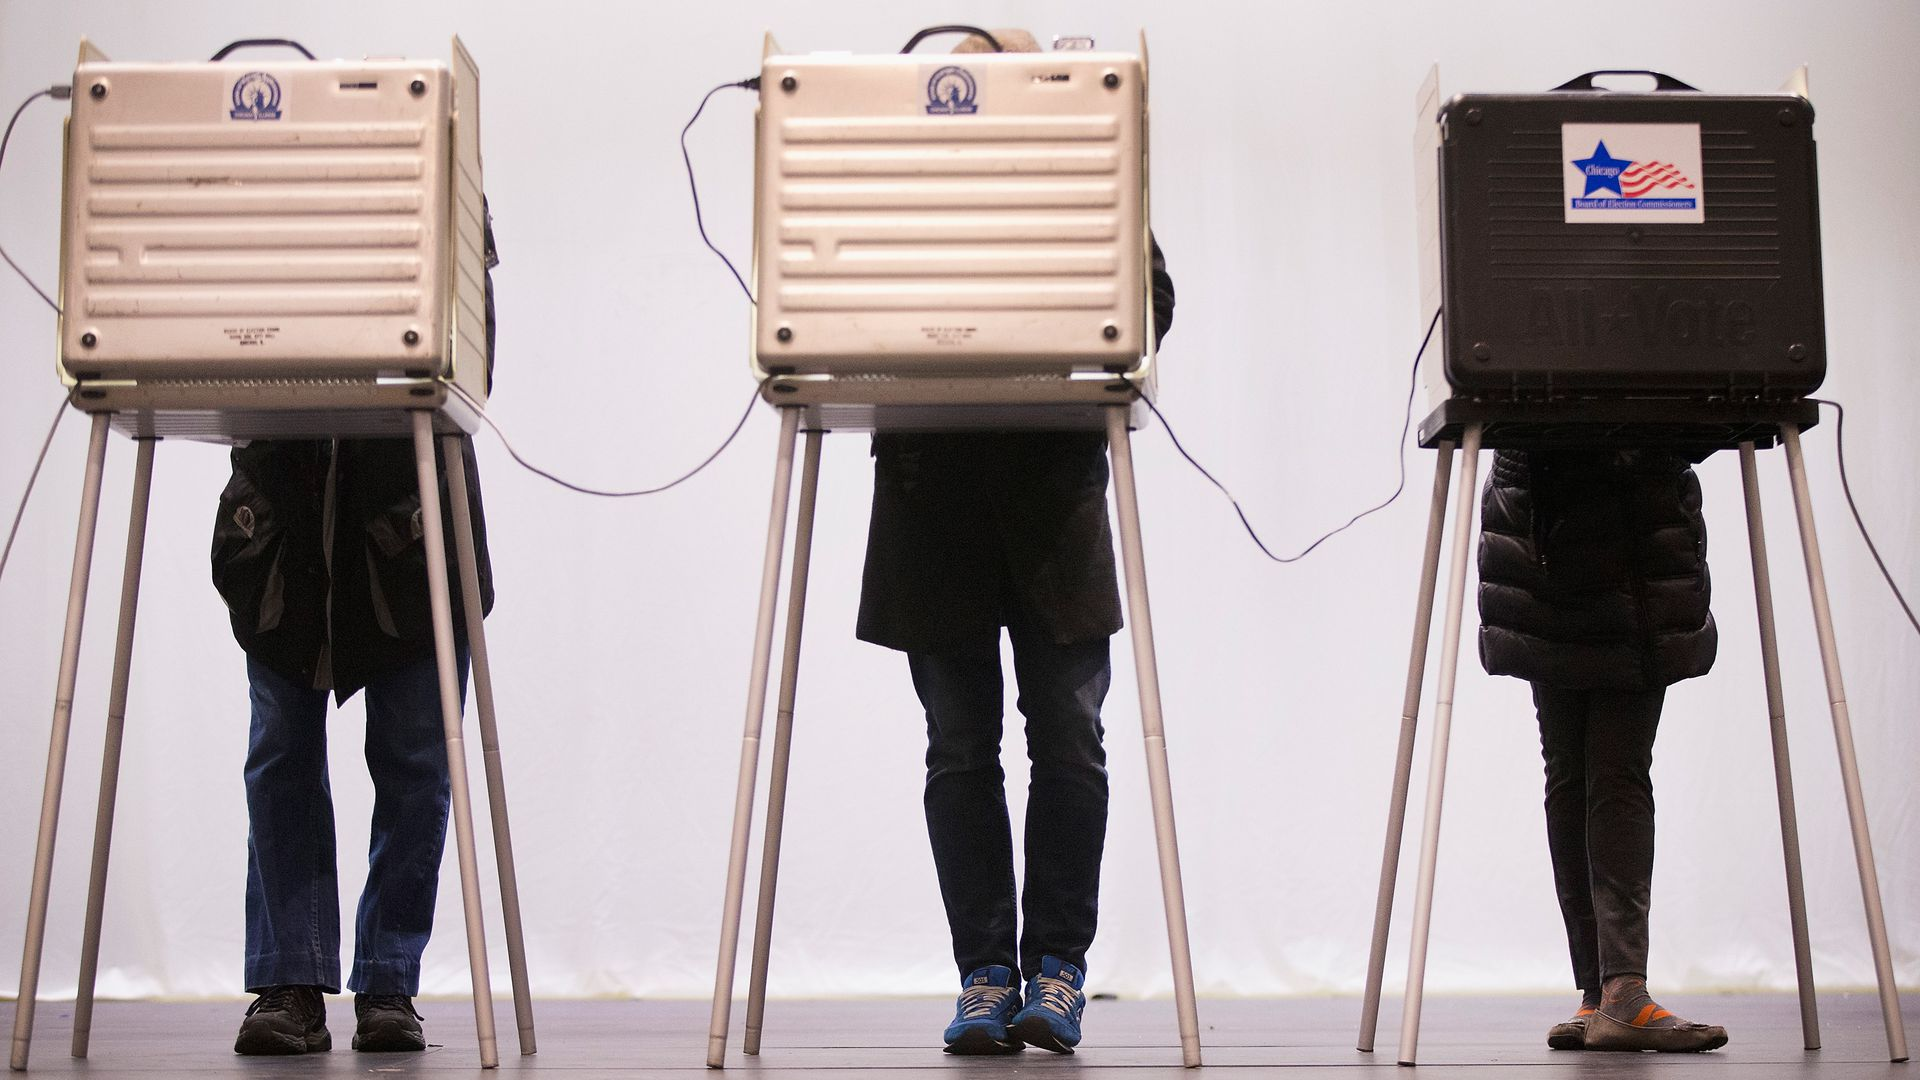 Voters casts their ballots